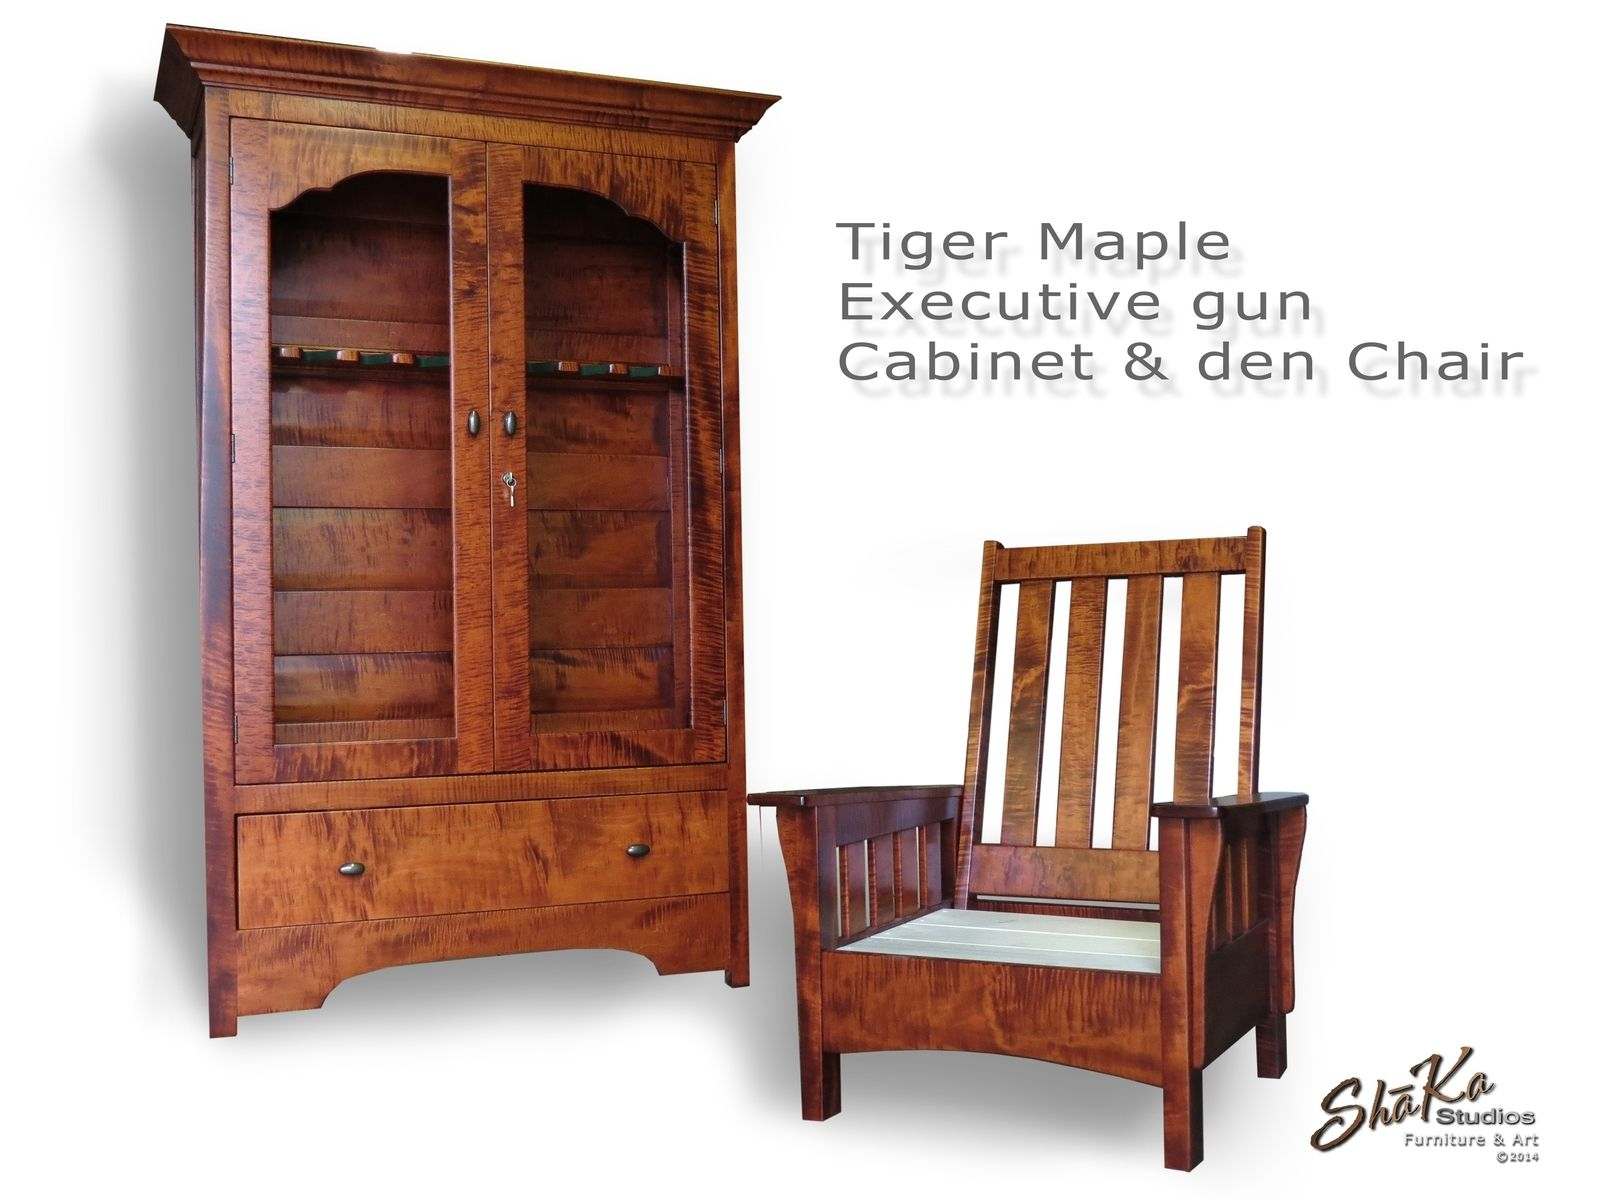 Custom tiger maple executive gun cabinet and den chair by sh ka studios - Custom made cabinet ...